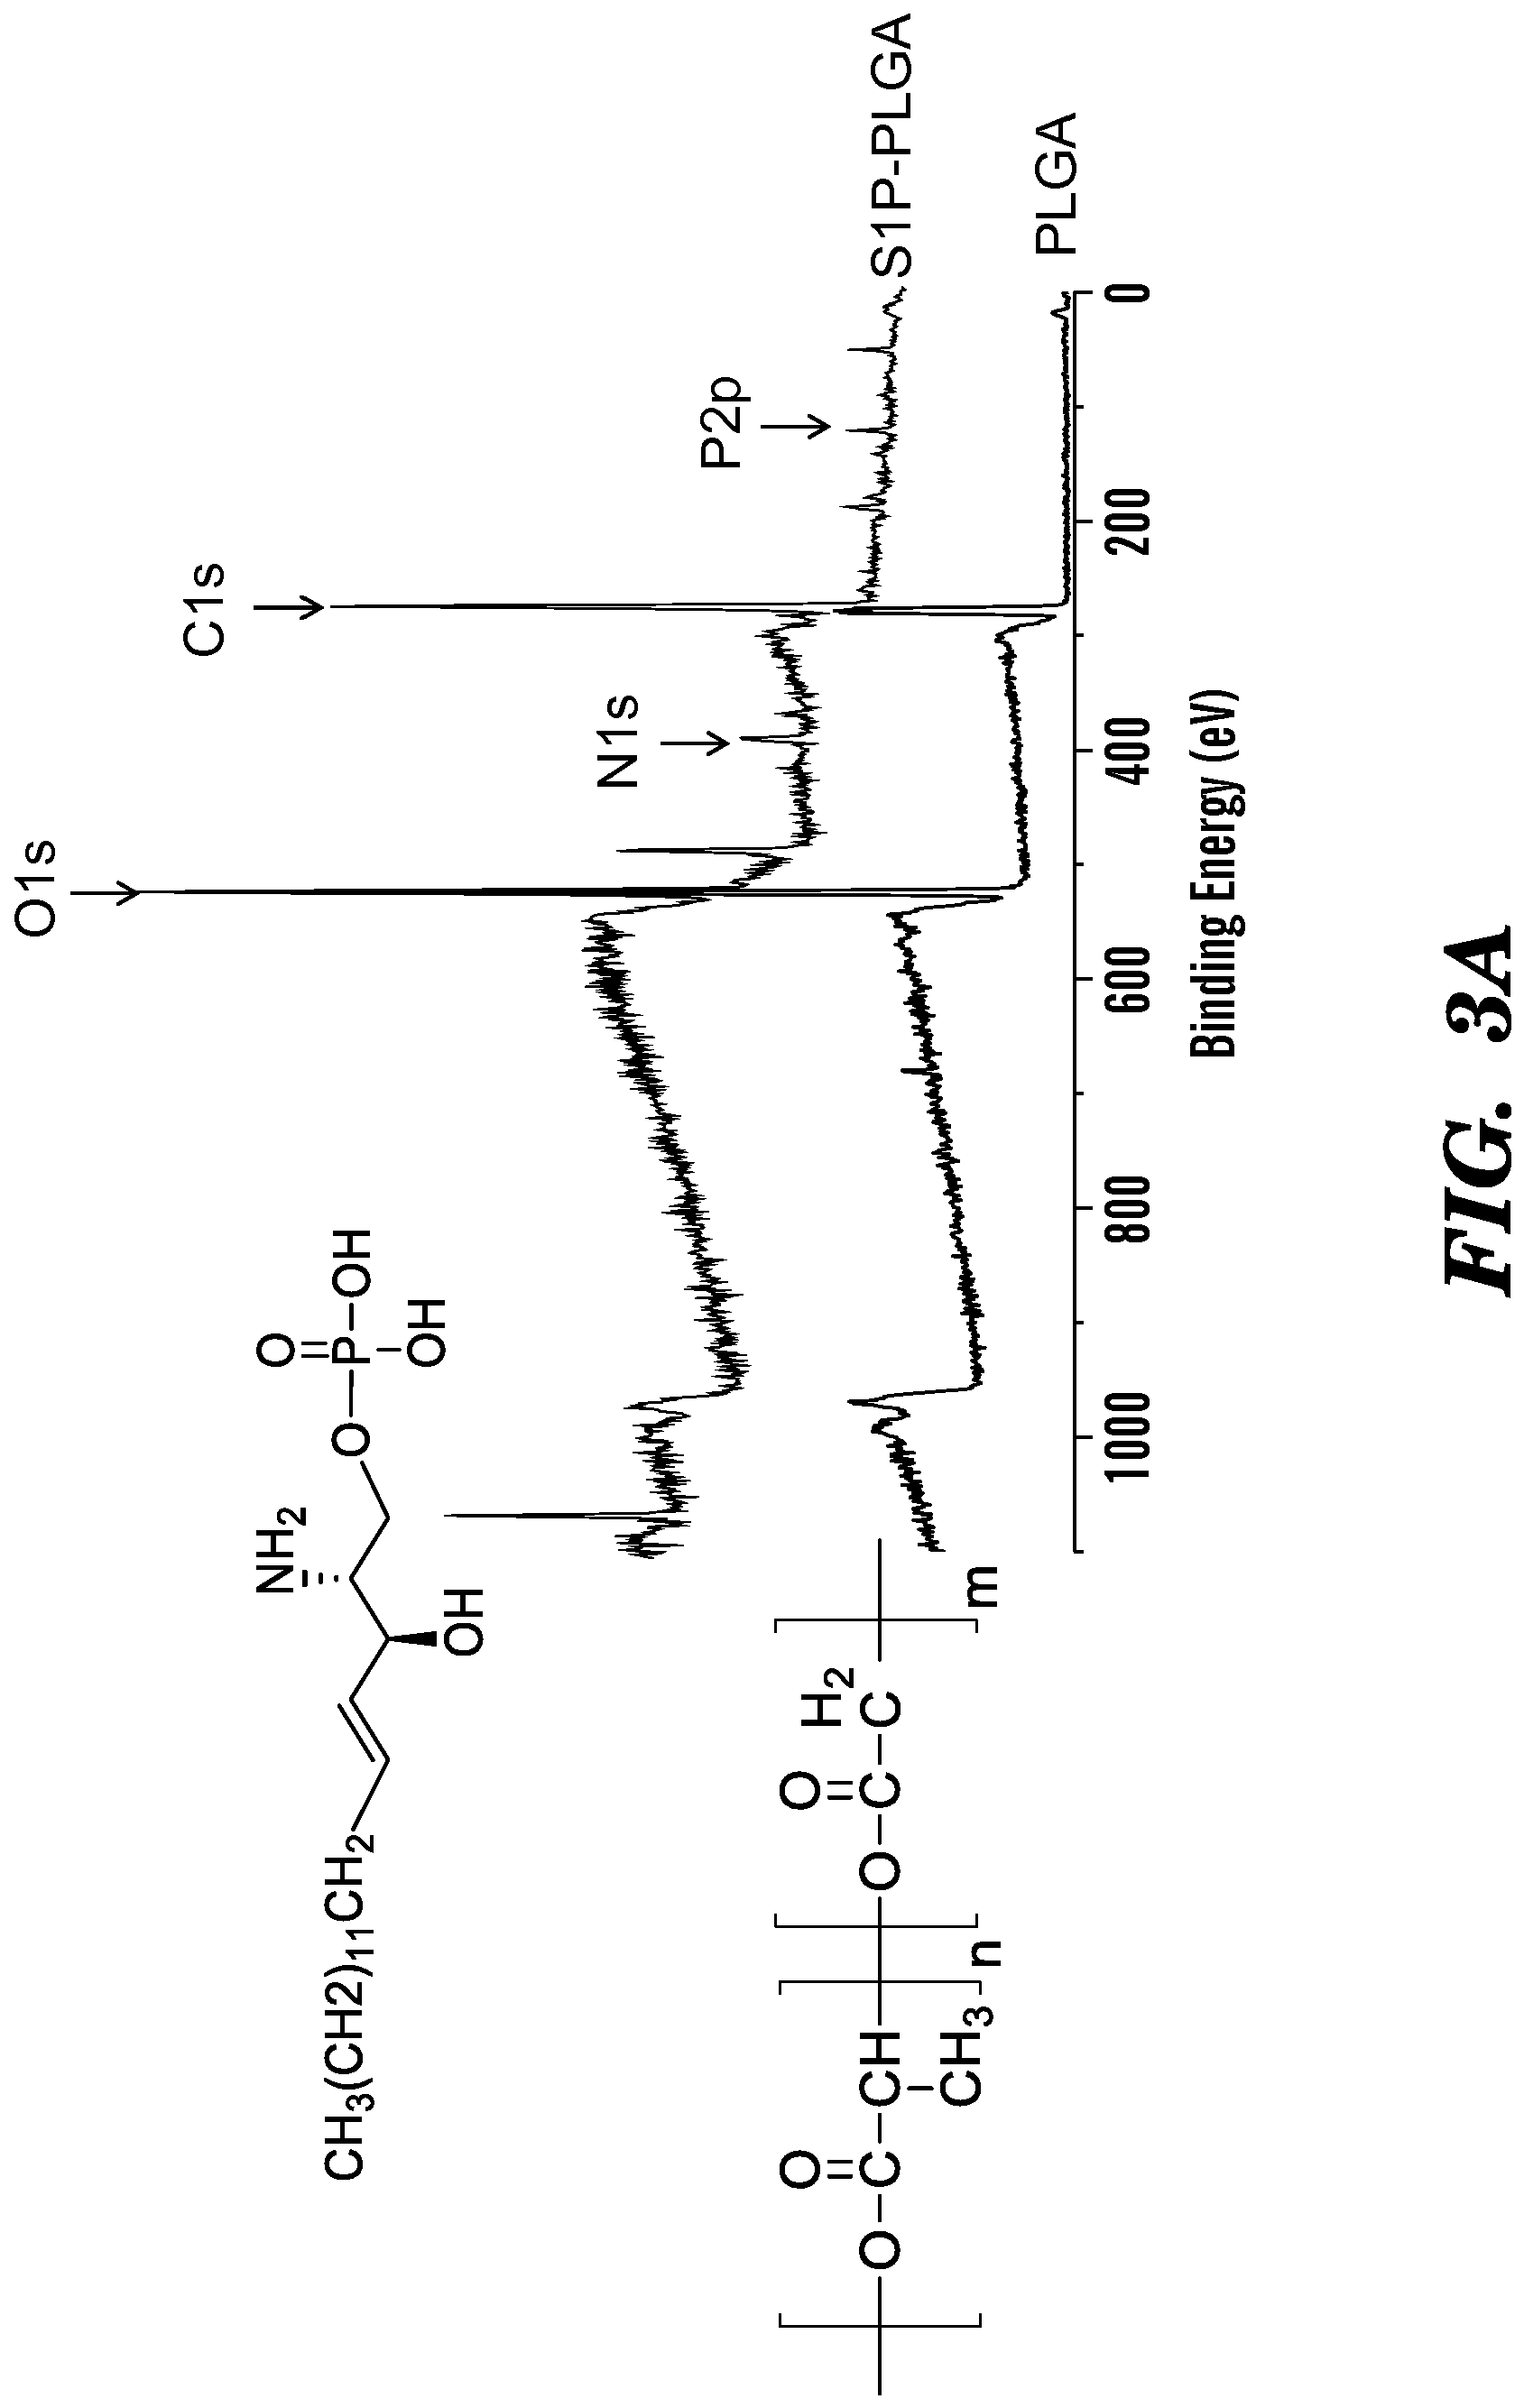 SYSTEMS AND METHOD FOR ENGINEERING MUSCLE TISSUE - Patent 2833930